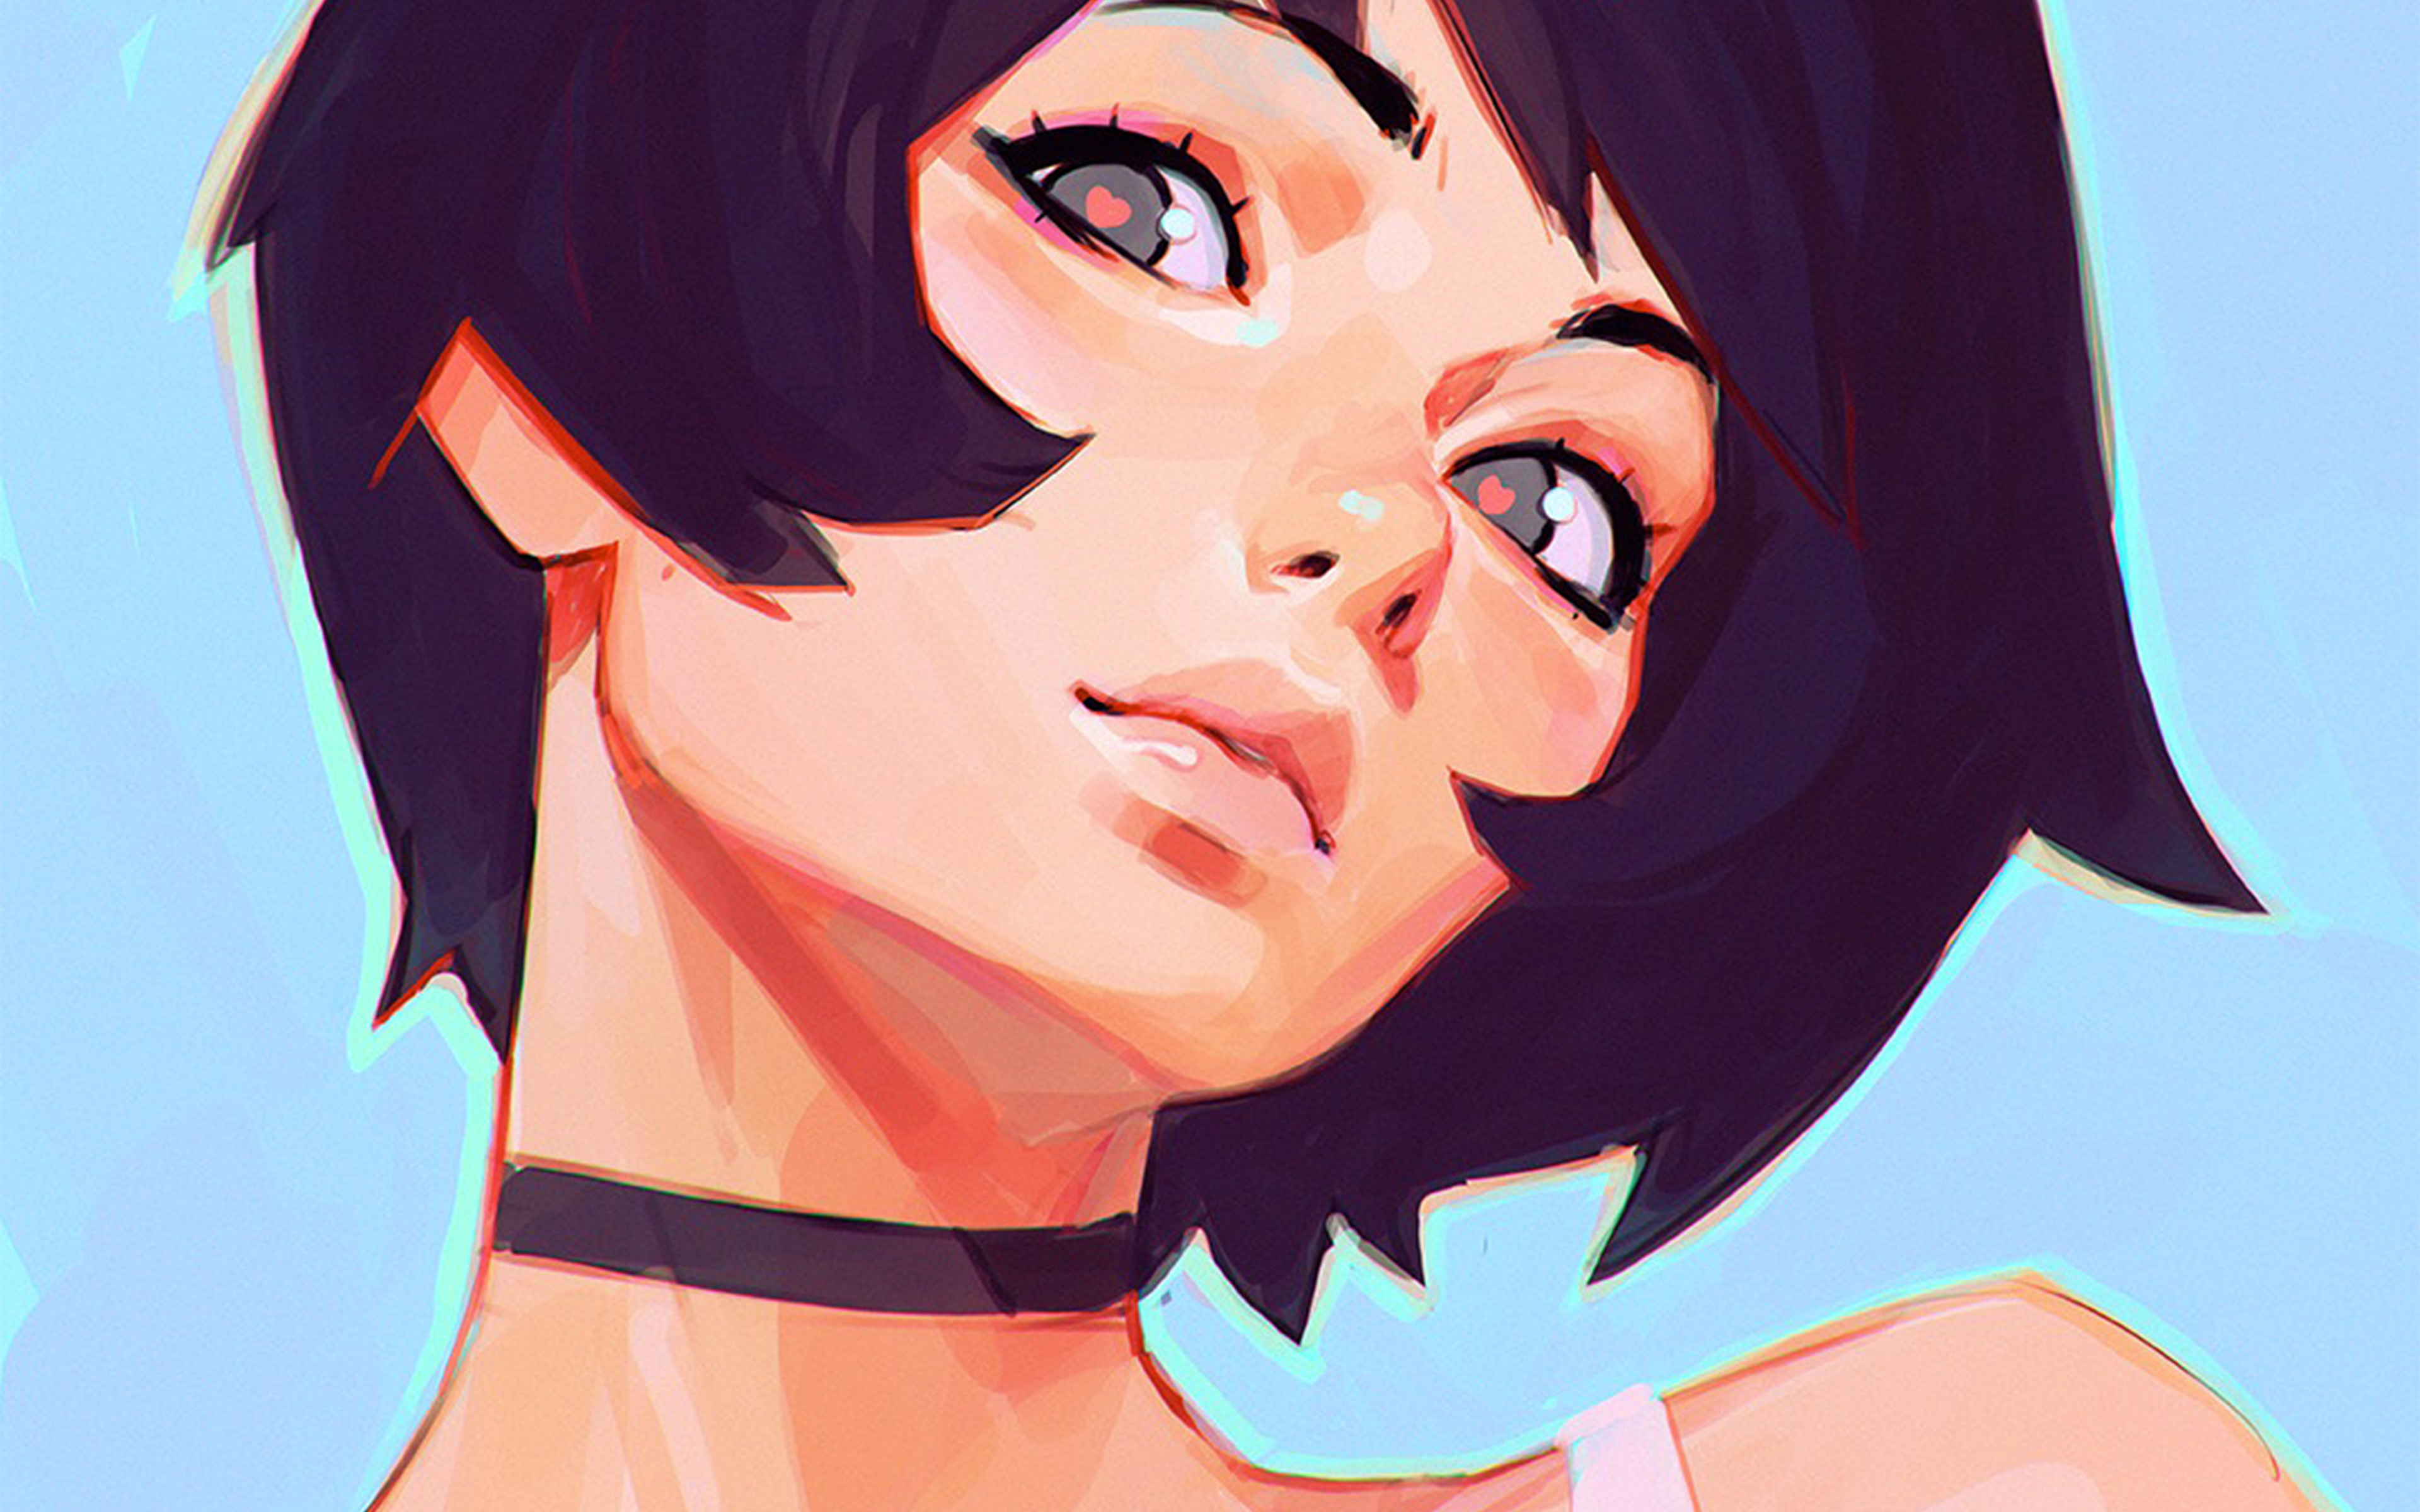 az35-girl-face-ilya-kuvshinov-illustration-art-wallpaper